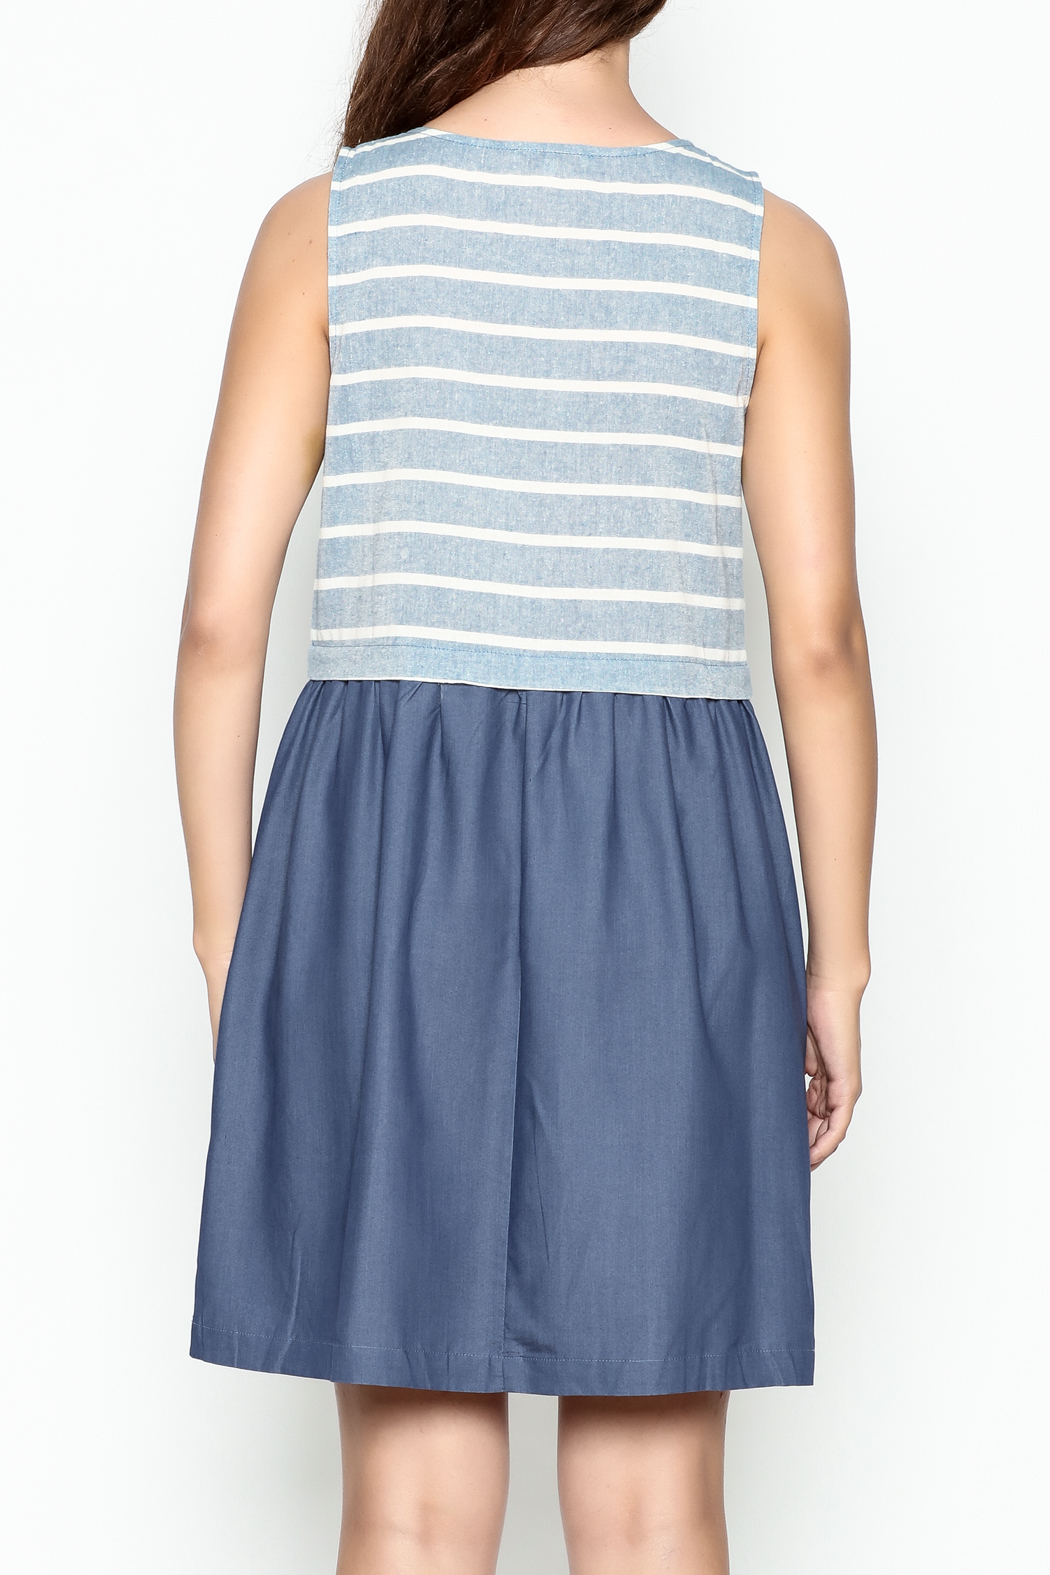 Skies Are Blue Blue And White Dress - Back Cropped Image